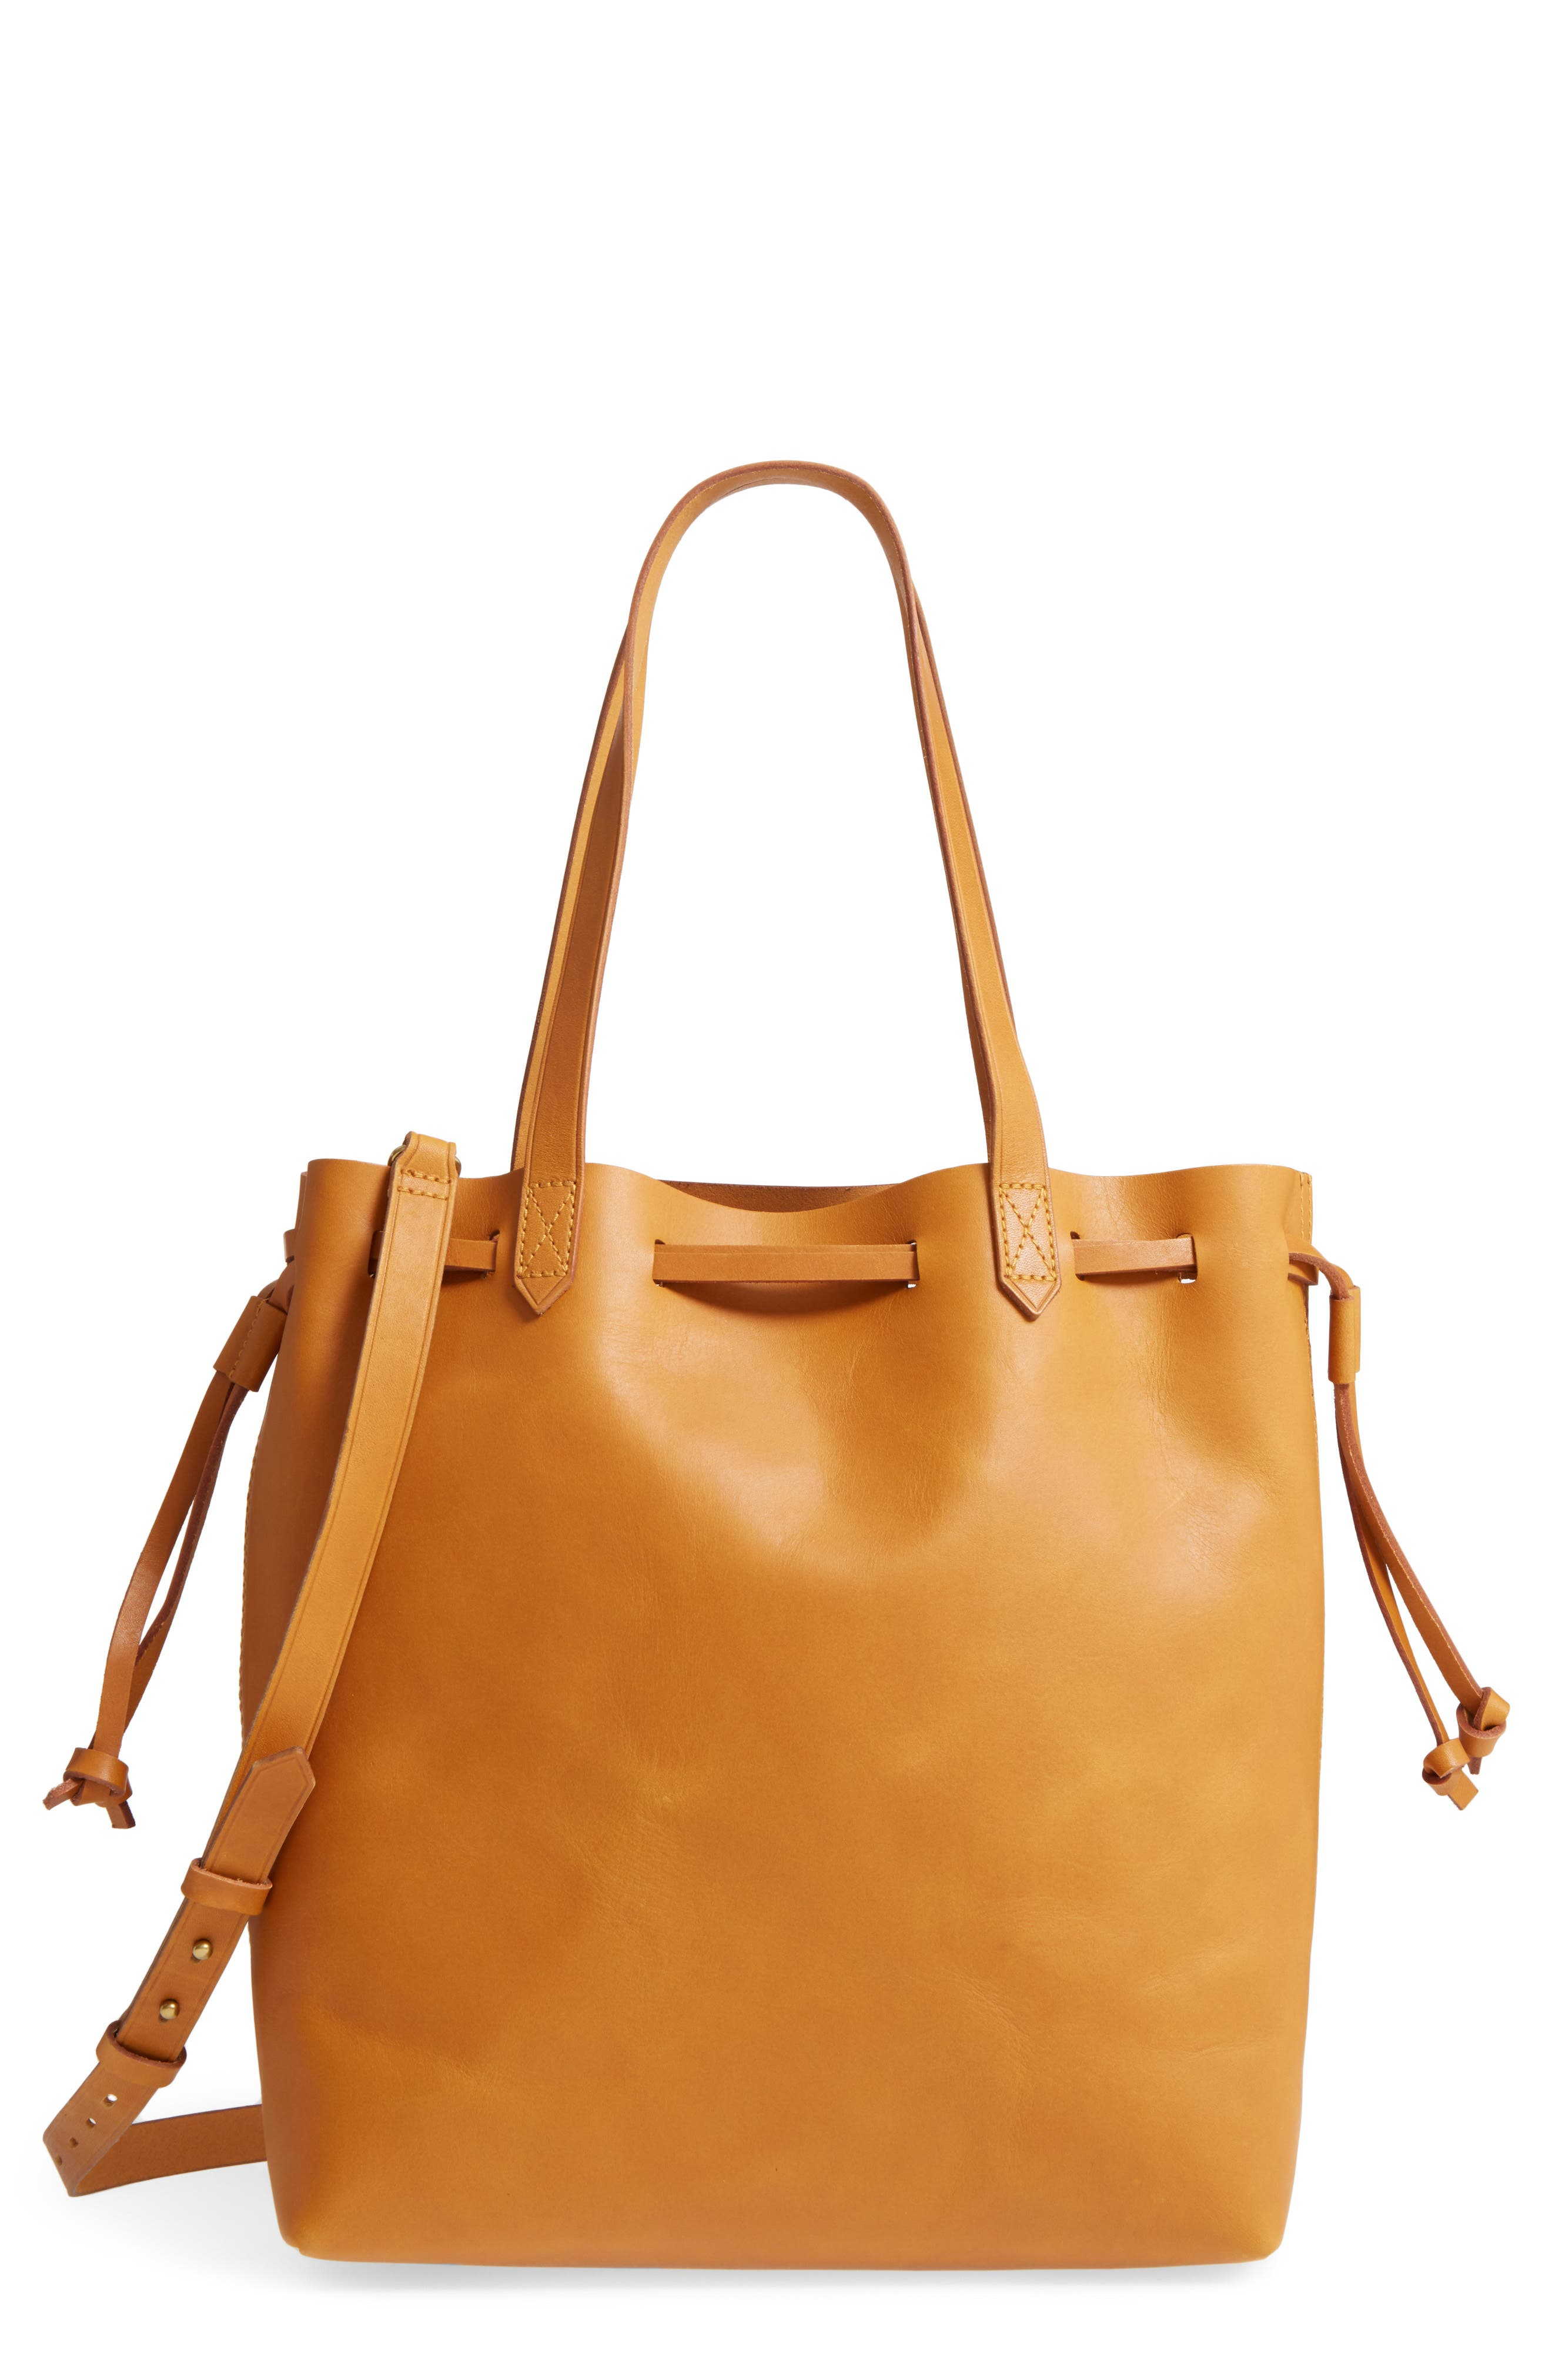 Drawcord Transport Leather Tote,                             Main thumbnail 1, color,                             250